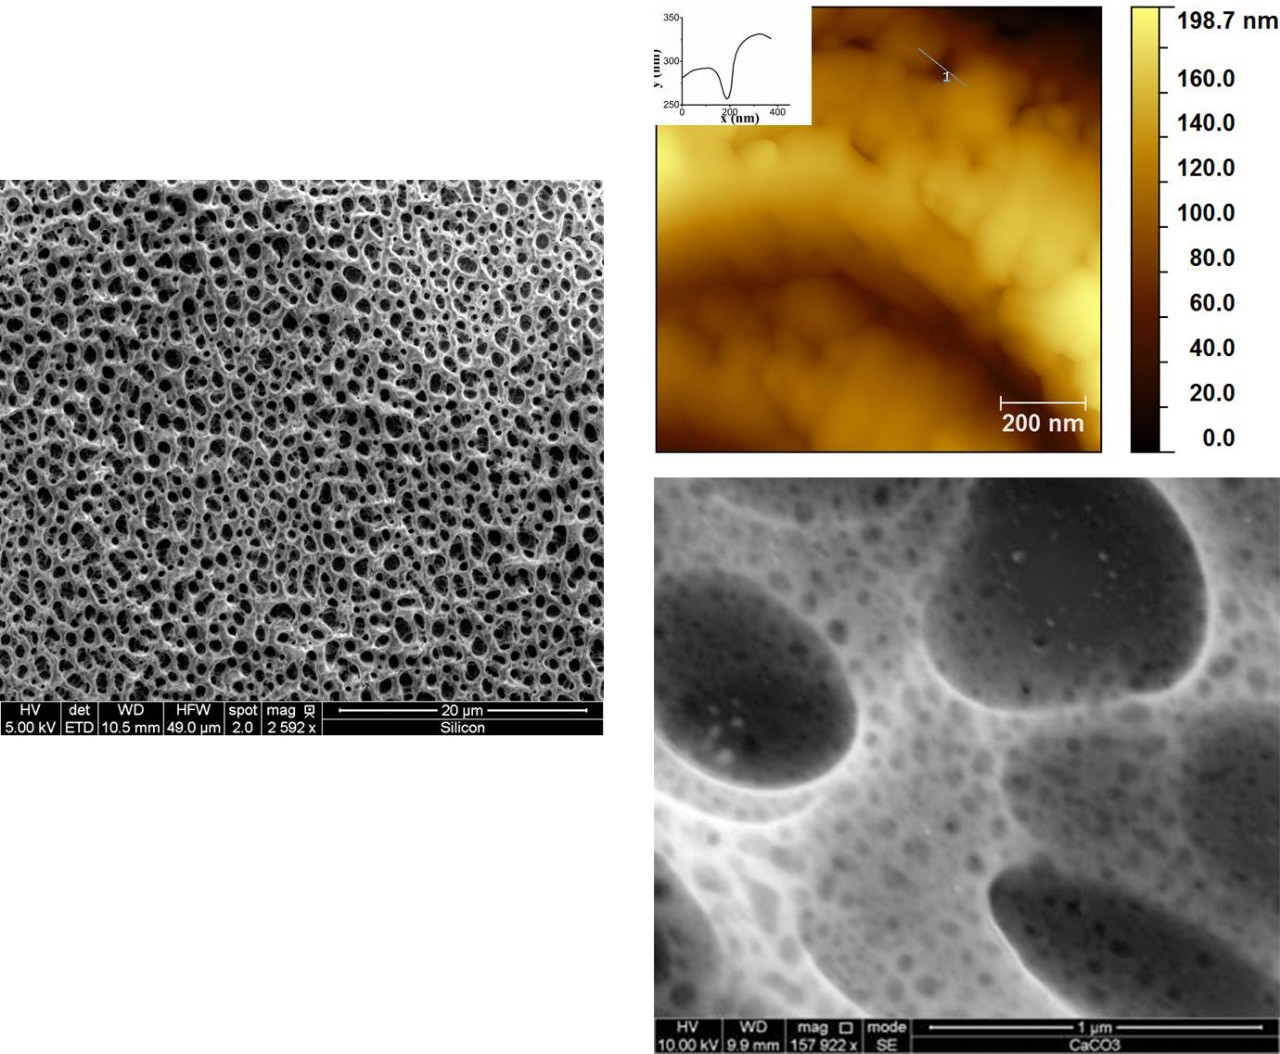 Micro- and nanopores of calcium carbonate scaffolds.